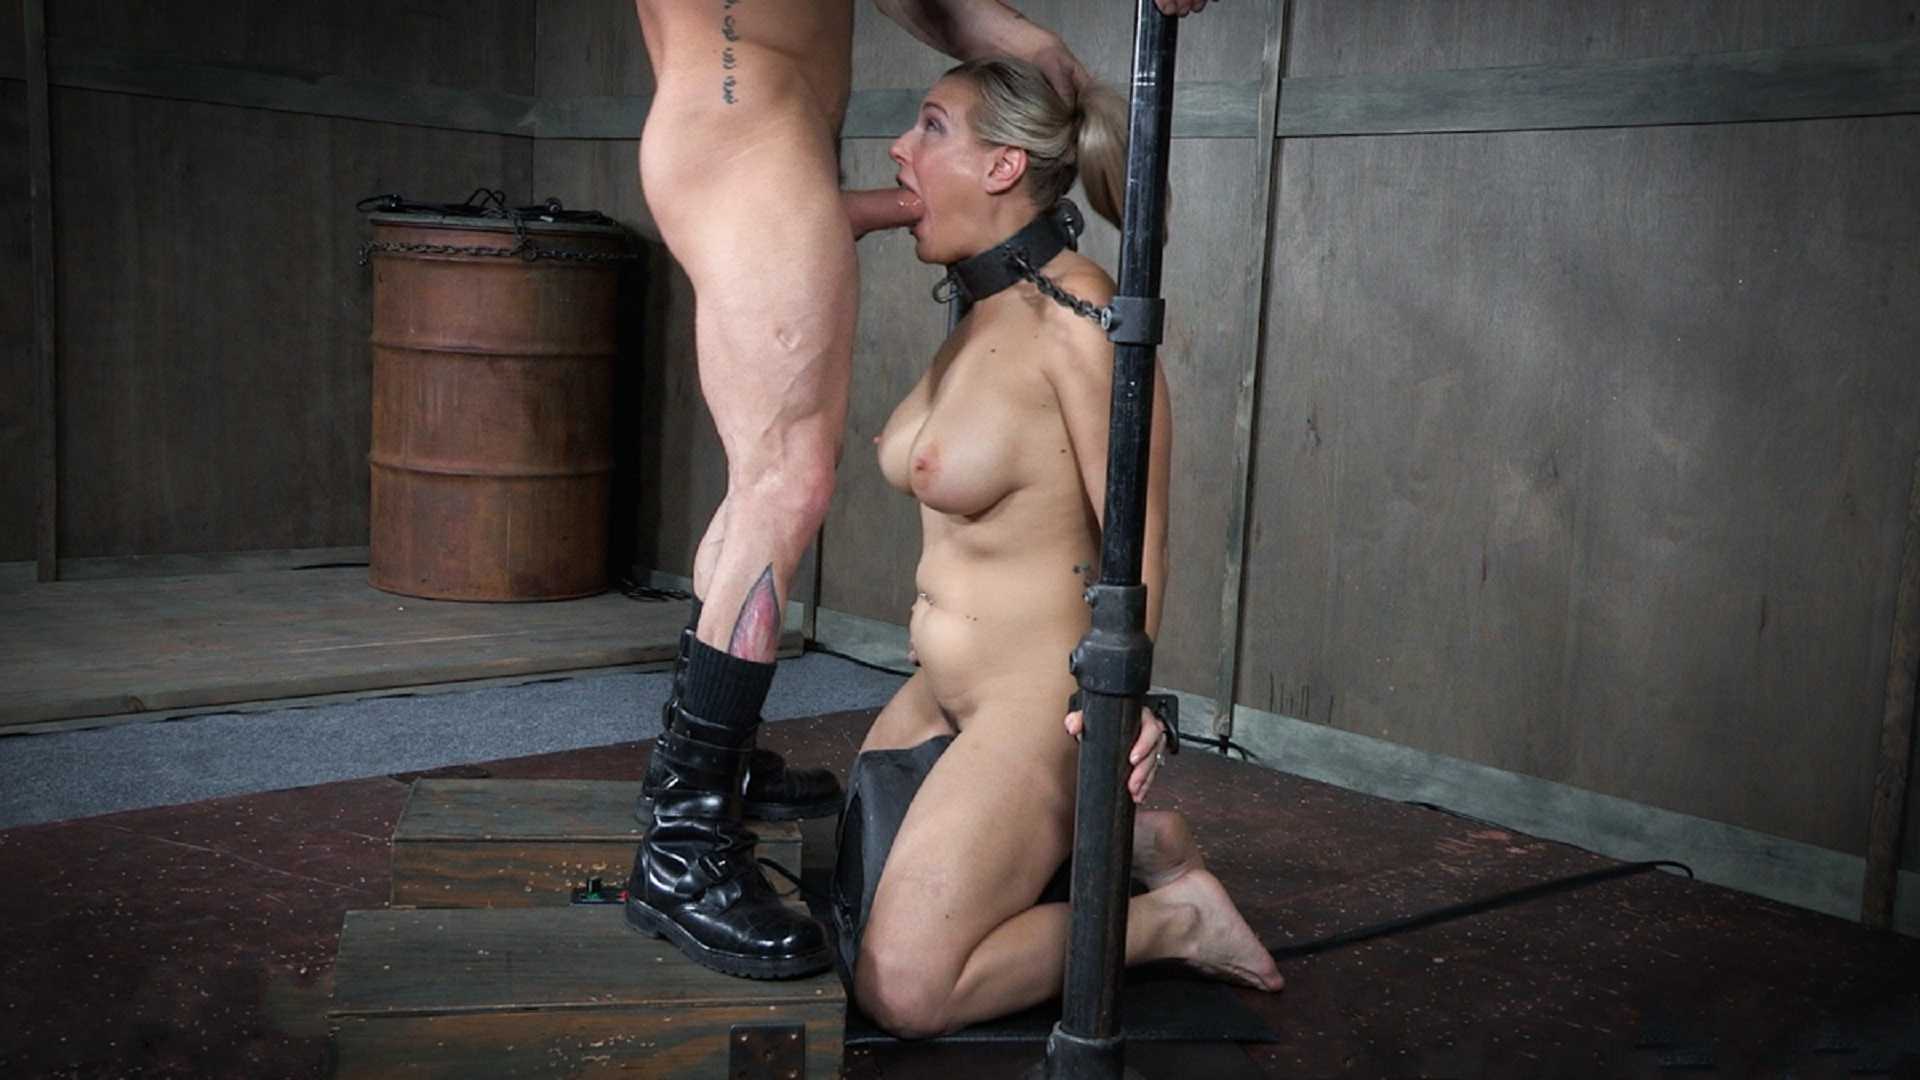 Angel Allwood is neck bound on a Sybian and throat fucked while violently cumming over and over   Angel Allwood   Sergeant Miles   HD 720p   April 19, 2017